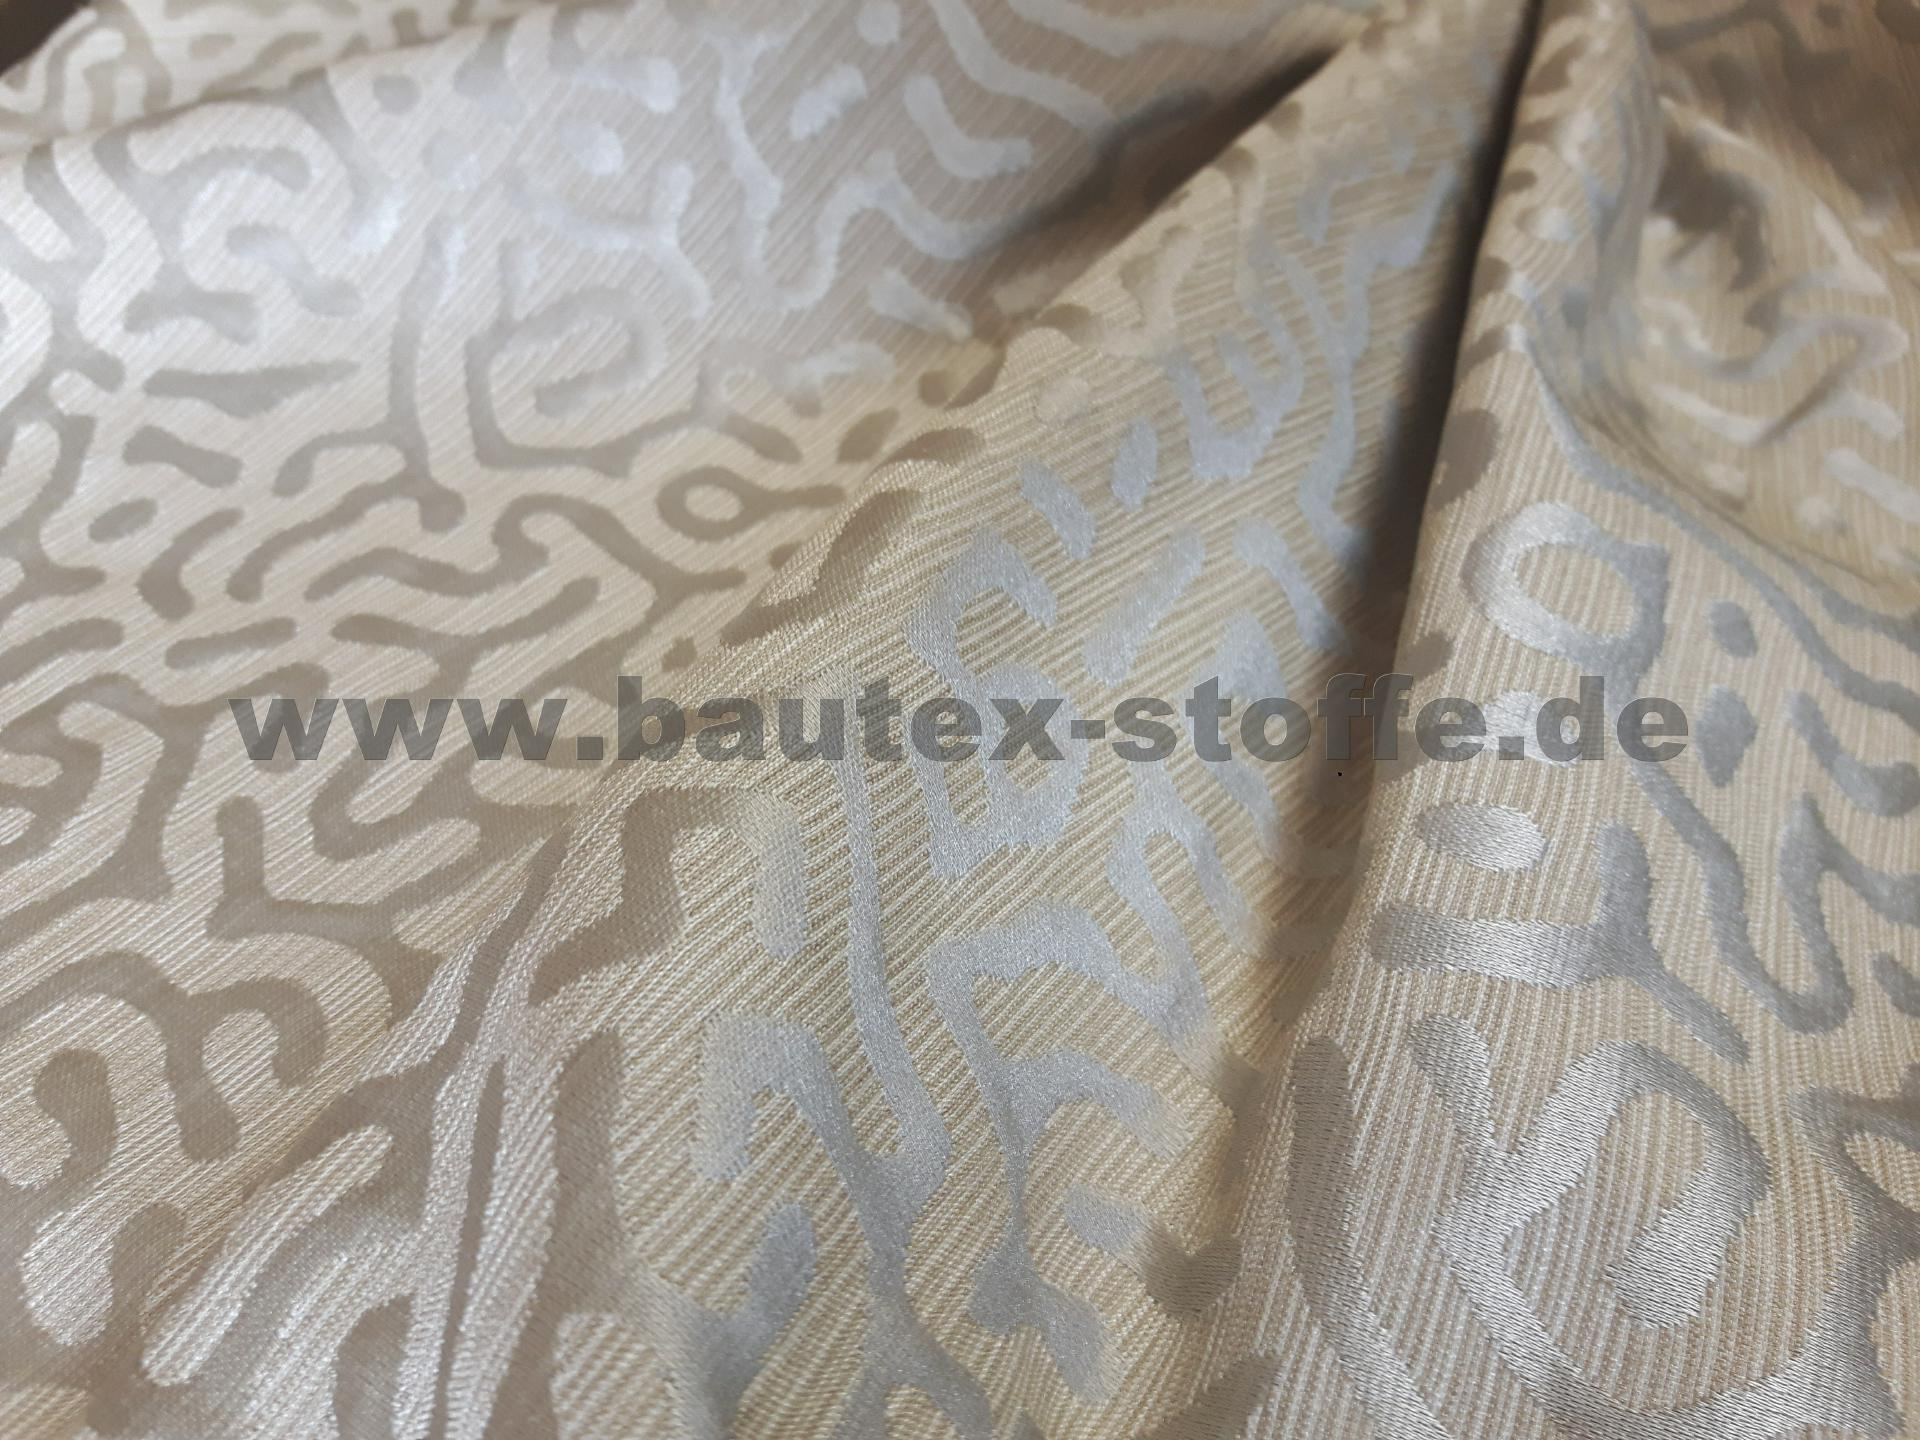 Decorative Fabric 1433